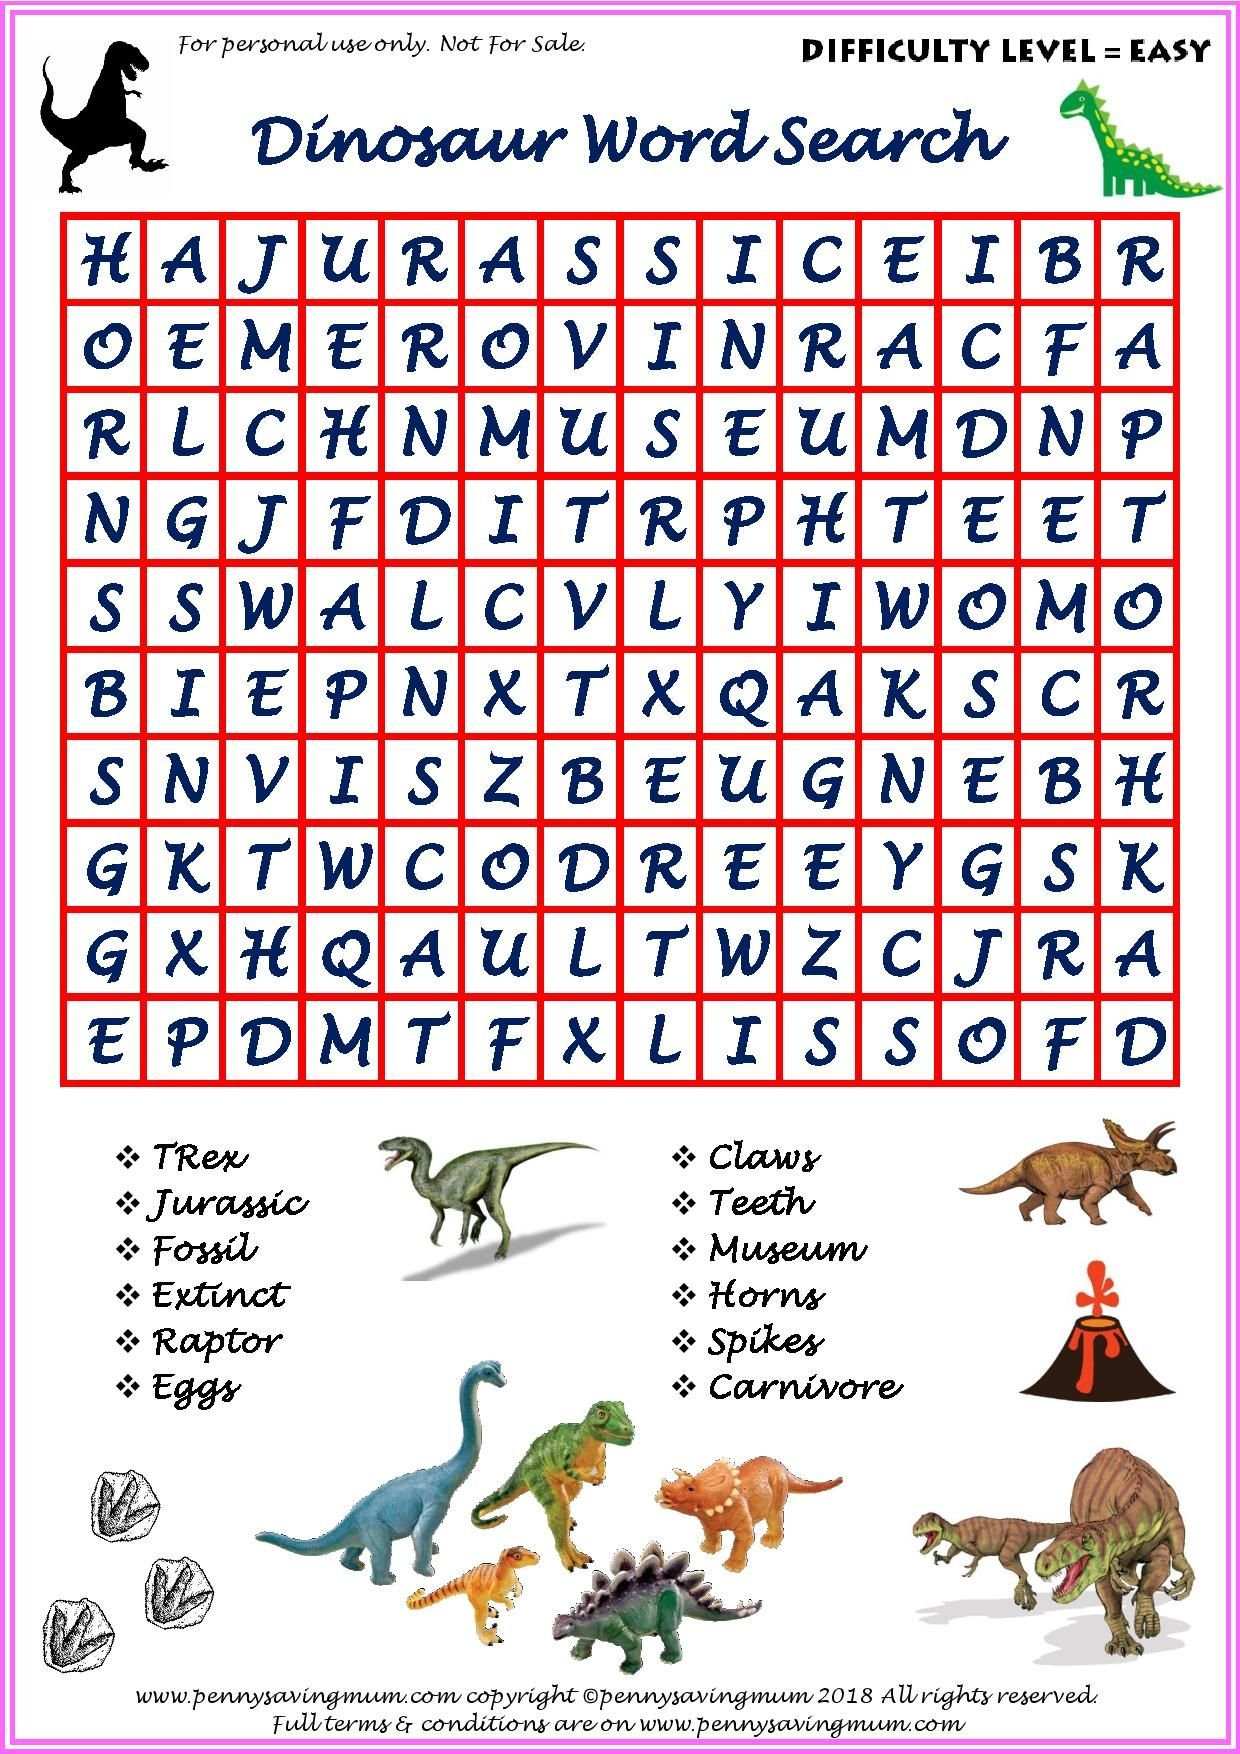 Word Search Dinosaur Easy Version